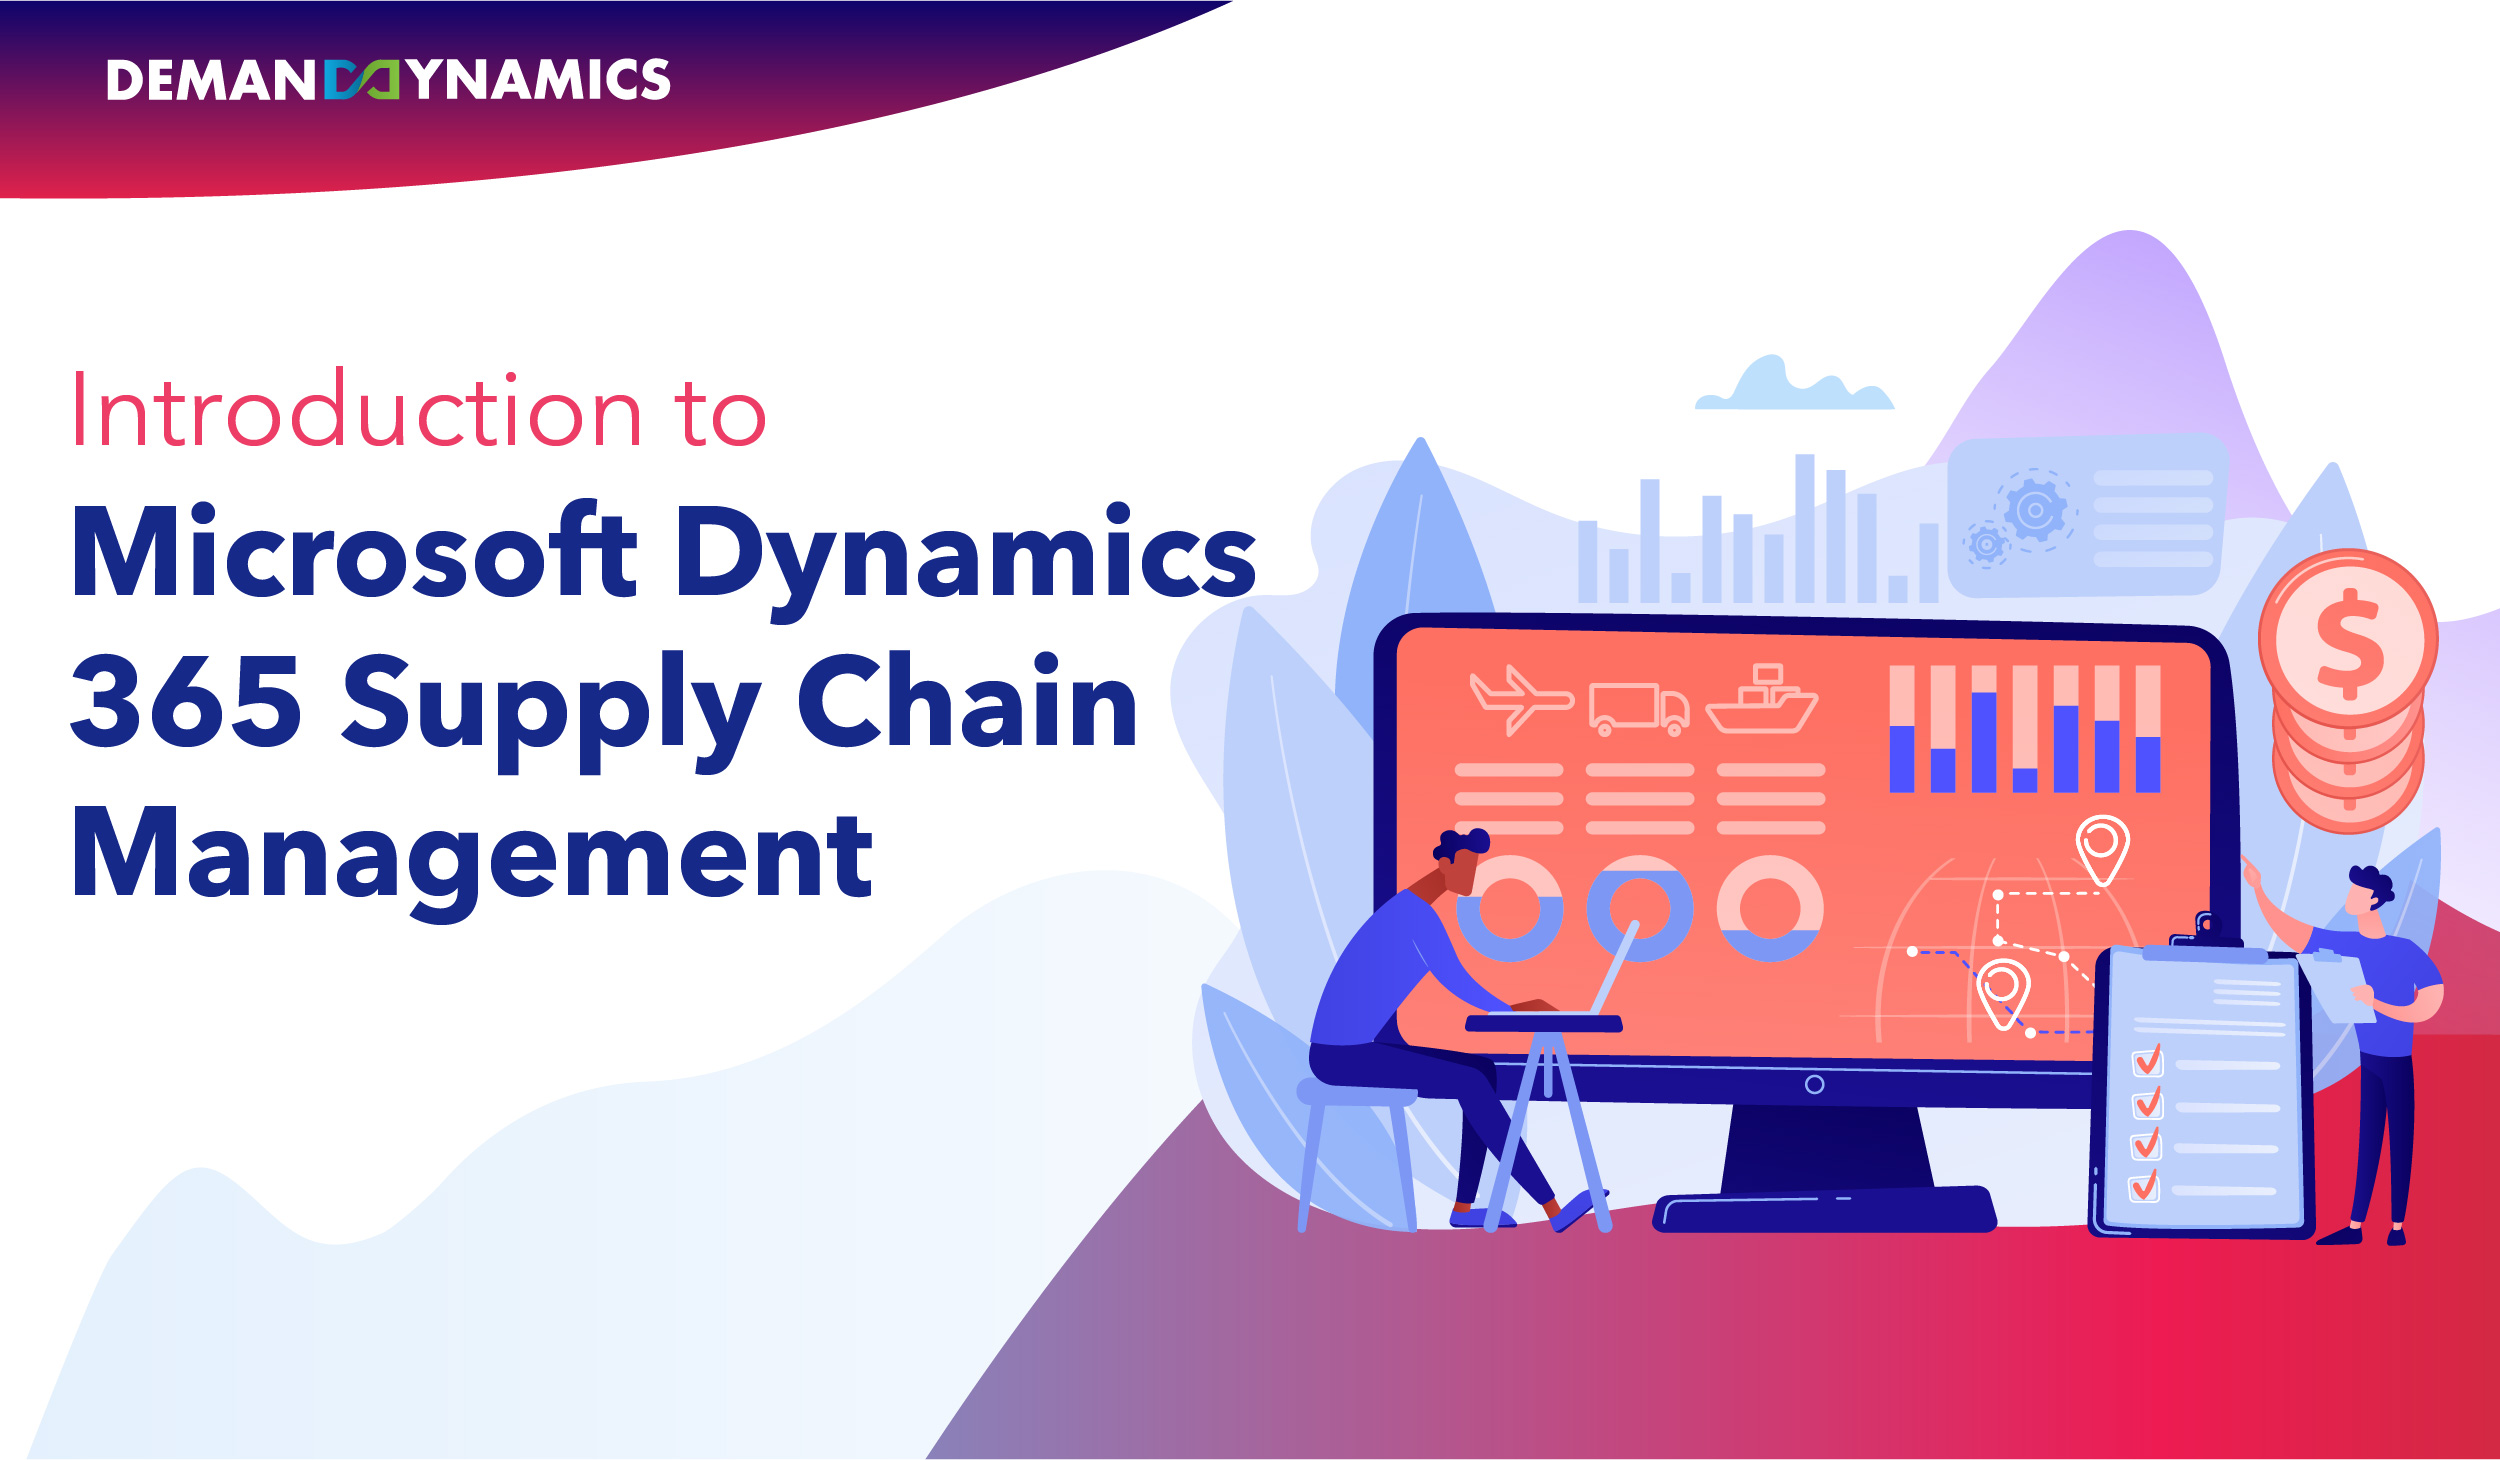 Getting started with Microsoft Dynamics 365 Supply Chain Management